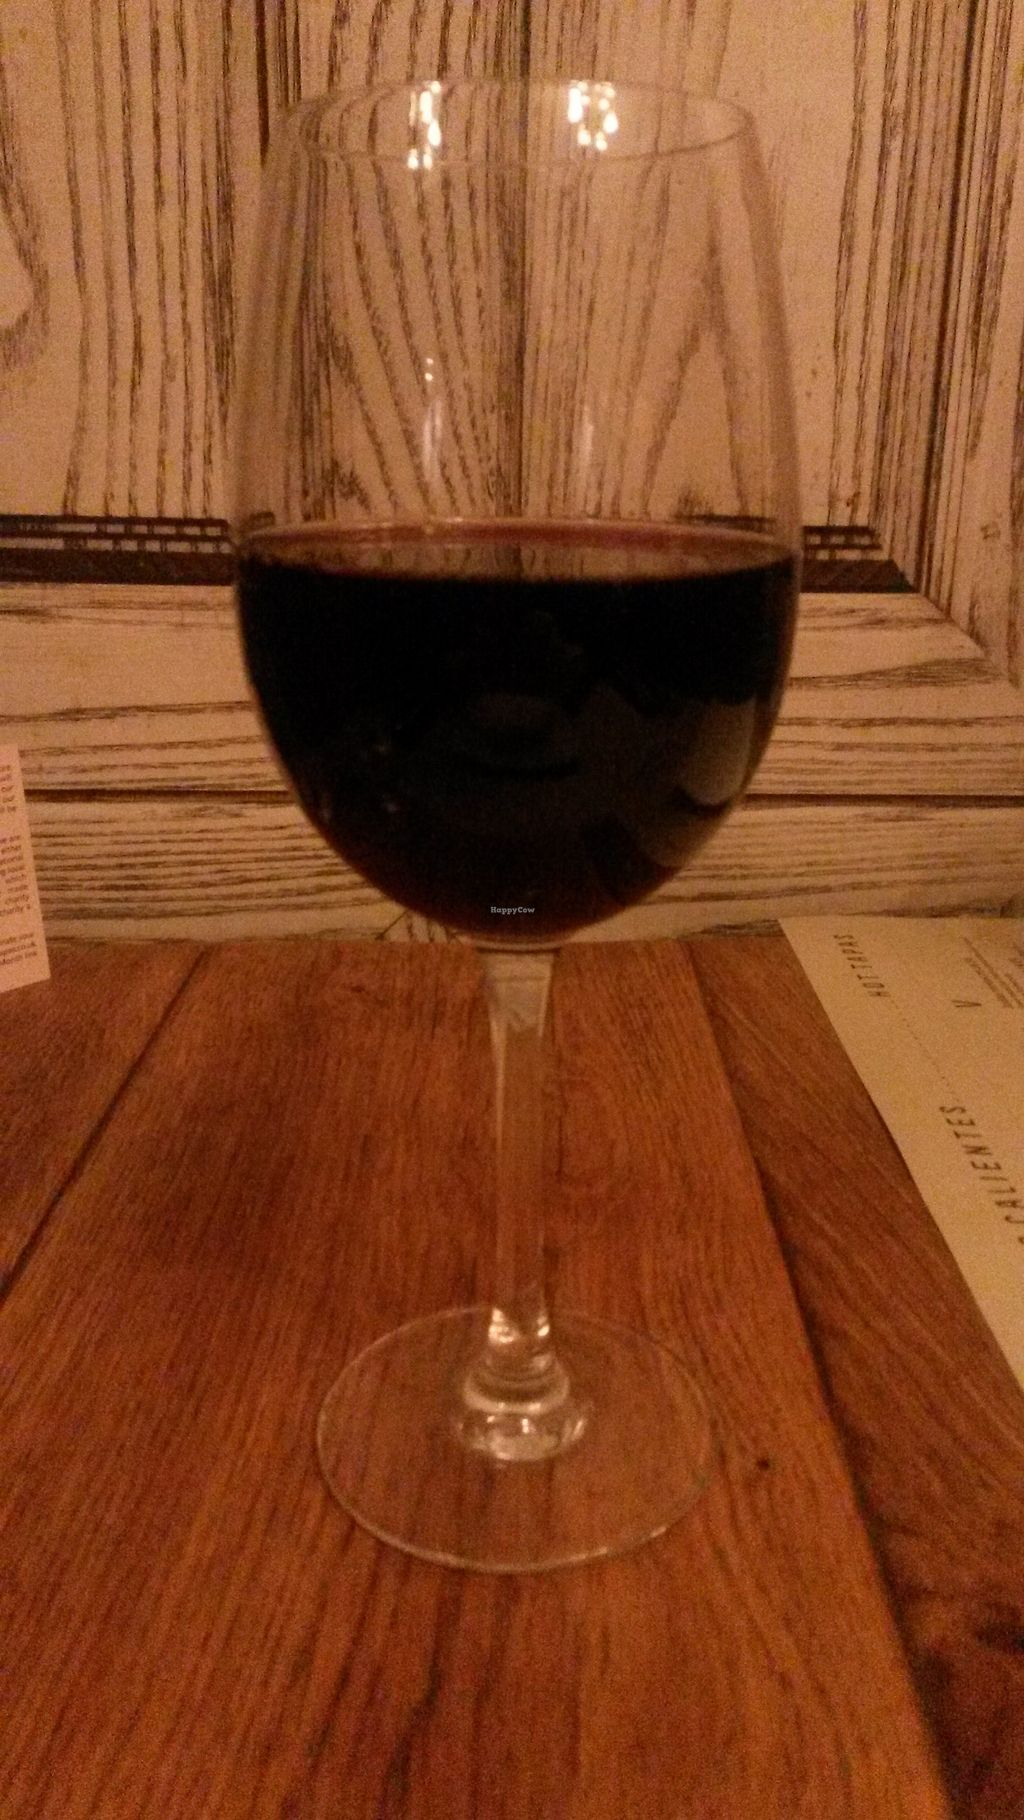 """Photo of Ambiente Tapas - Goodramgate  by <a href=""""/members/profile/deadpledge"""">deadpledge</a> <br/>Vegan red wine <br/> November 11, 2017  - <a href='/contact/abuse/image/28304/324242'>Report</a>"""